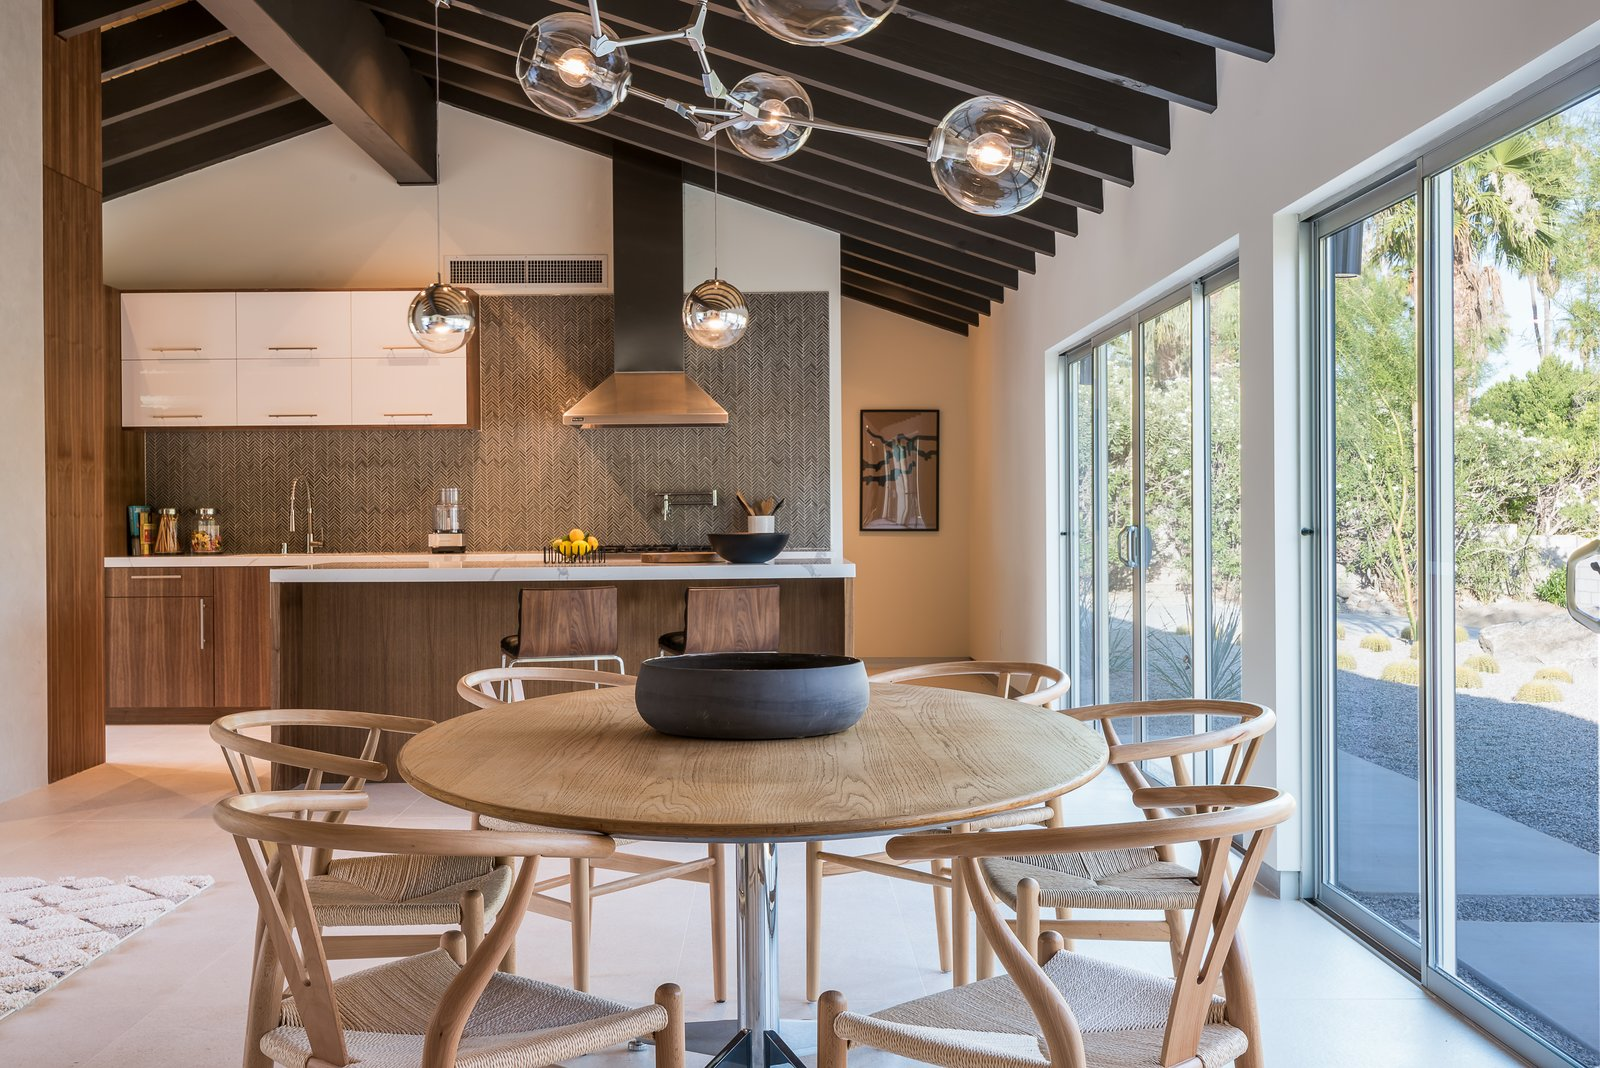 Dining Room, Chair, Accent Lighting, and Table The updated kitchen features a Viking Pro gas range, custom cabinetry, new imported Italian flooring, and a convenient kitchen island with bar seating.  Photo 7 of 16 in An Updated Palm Springs Estate Lists For $2.4M